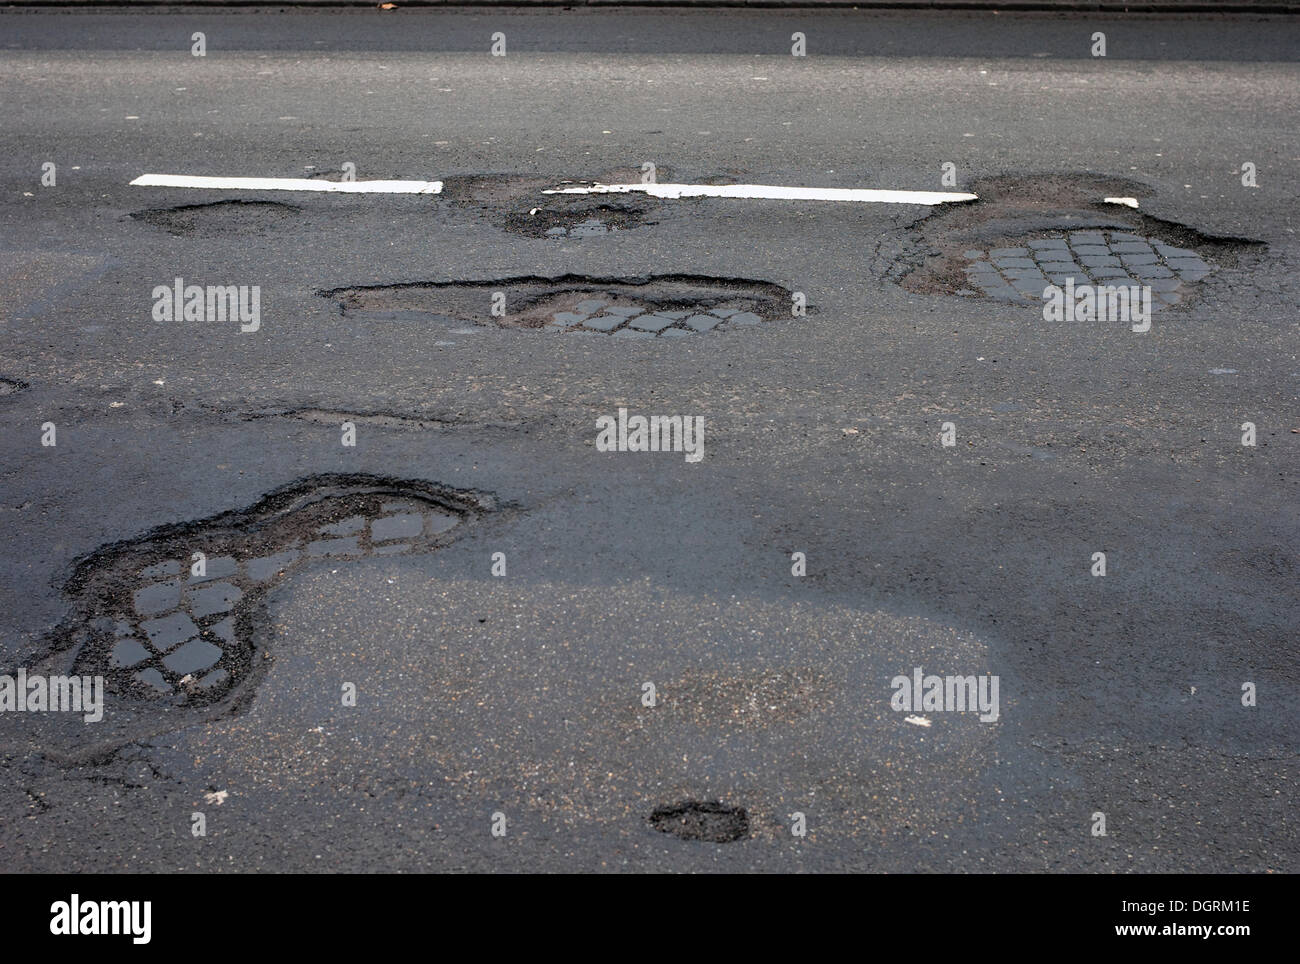 Frost damage, potholes in the road surface, Germany - Stock Image